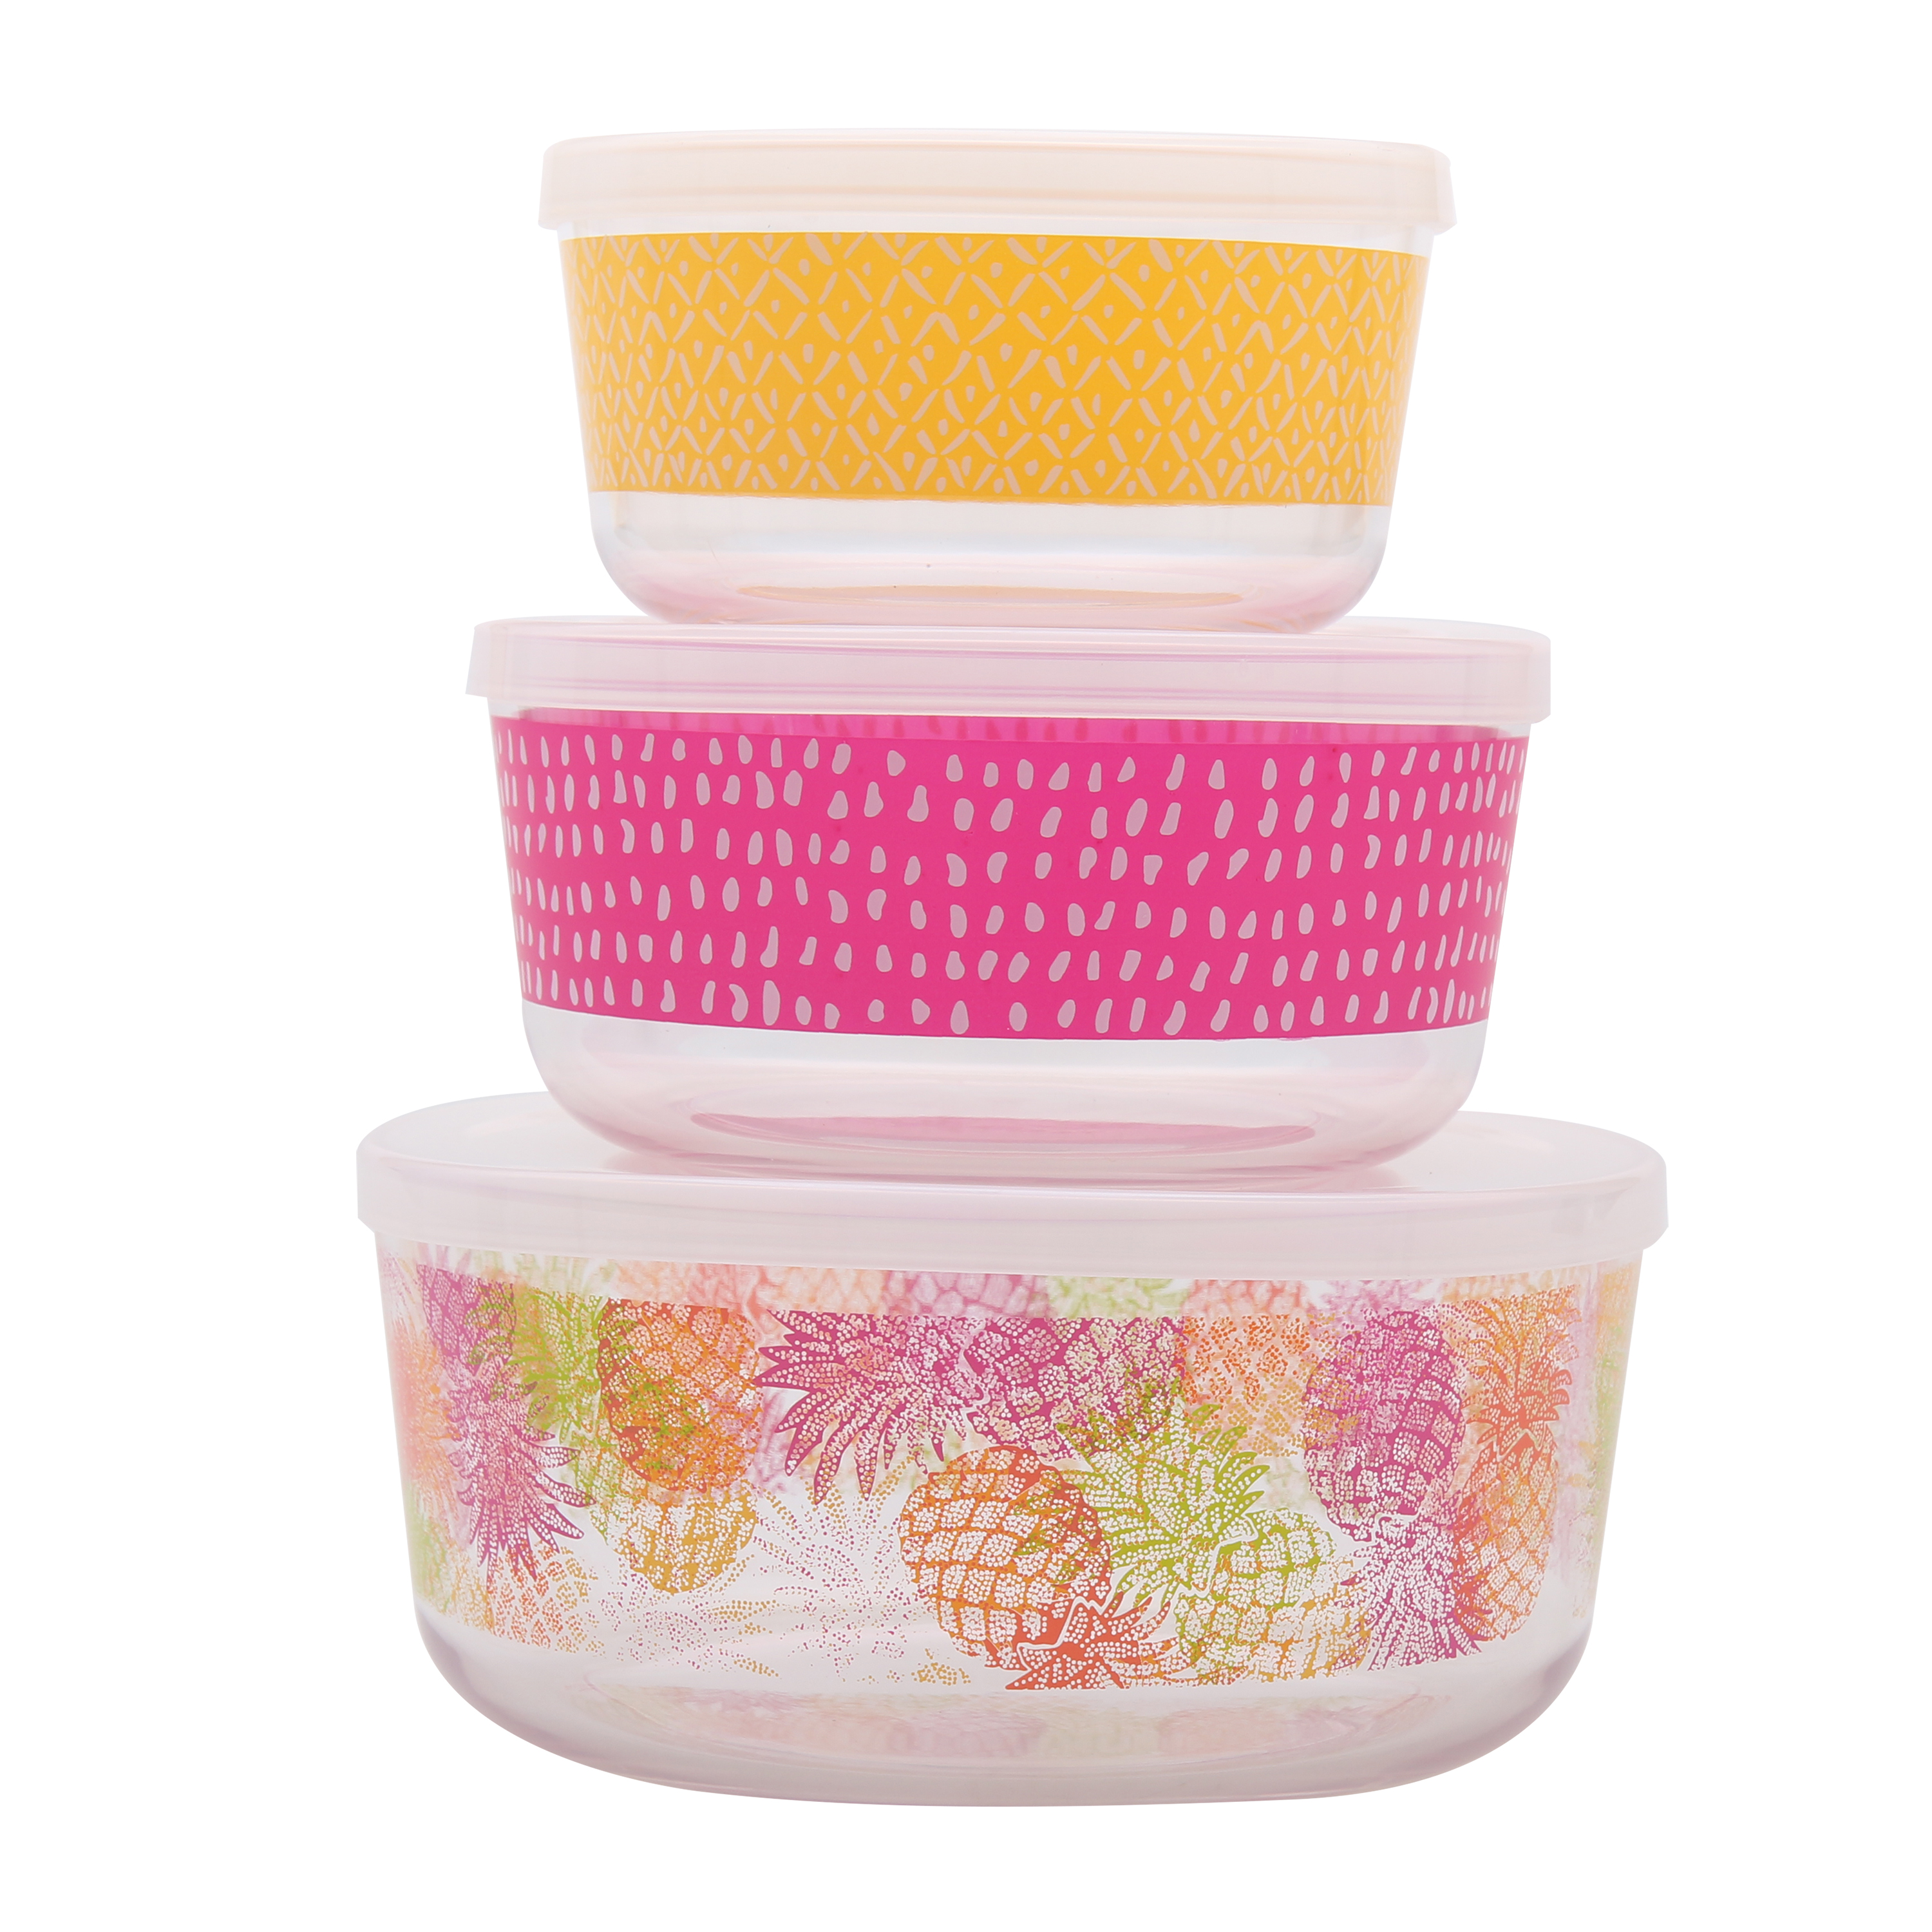 Mainstays Pineapple 3 Piece Bowl Set